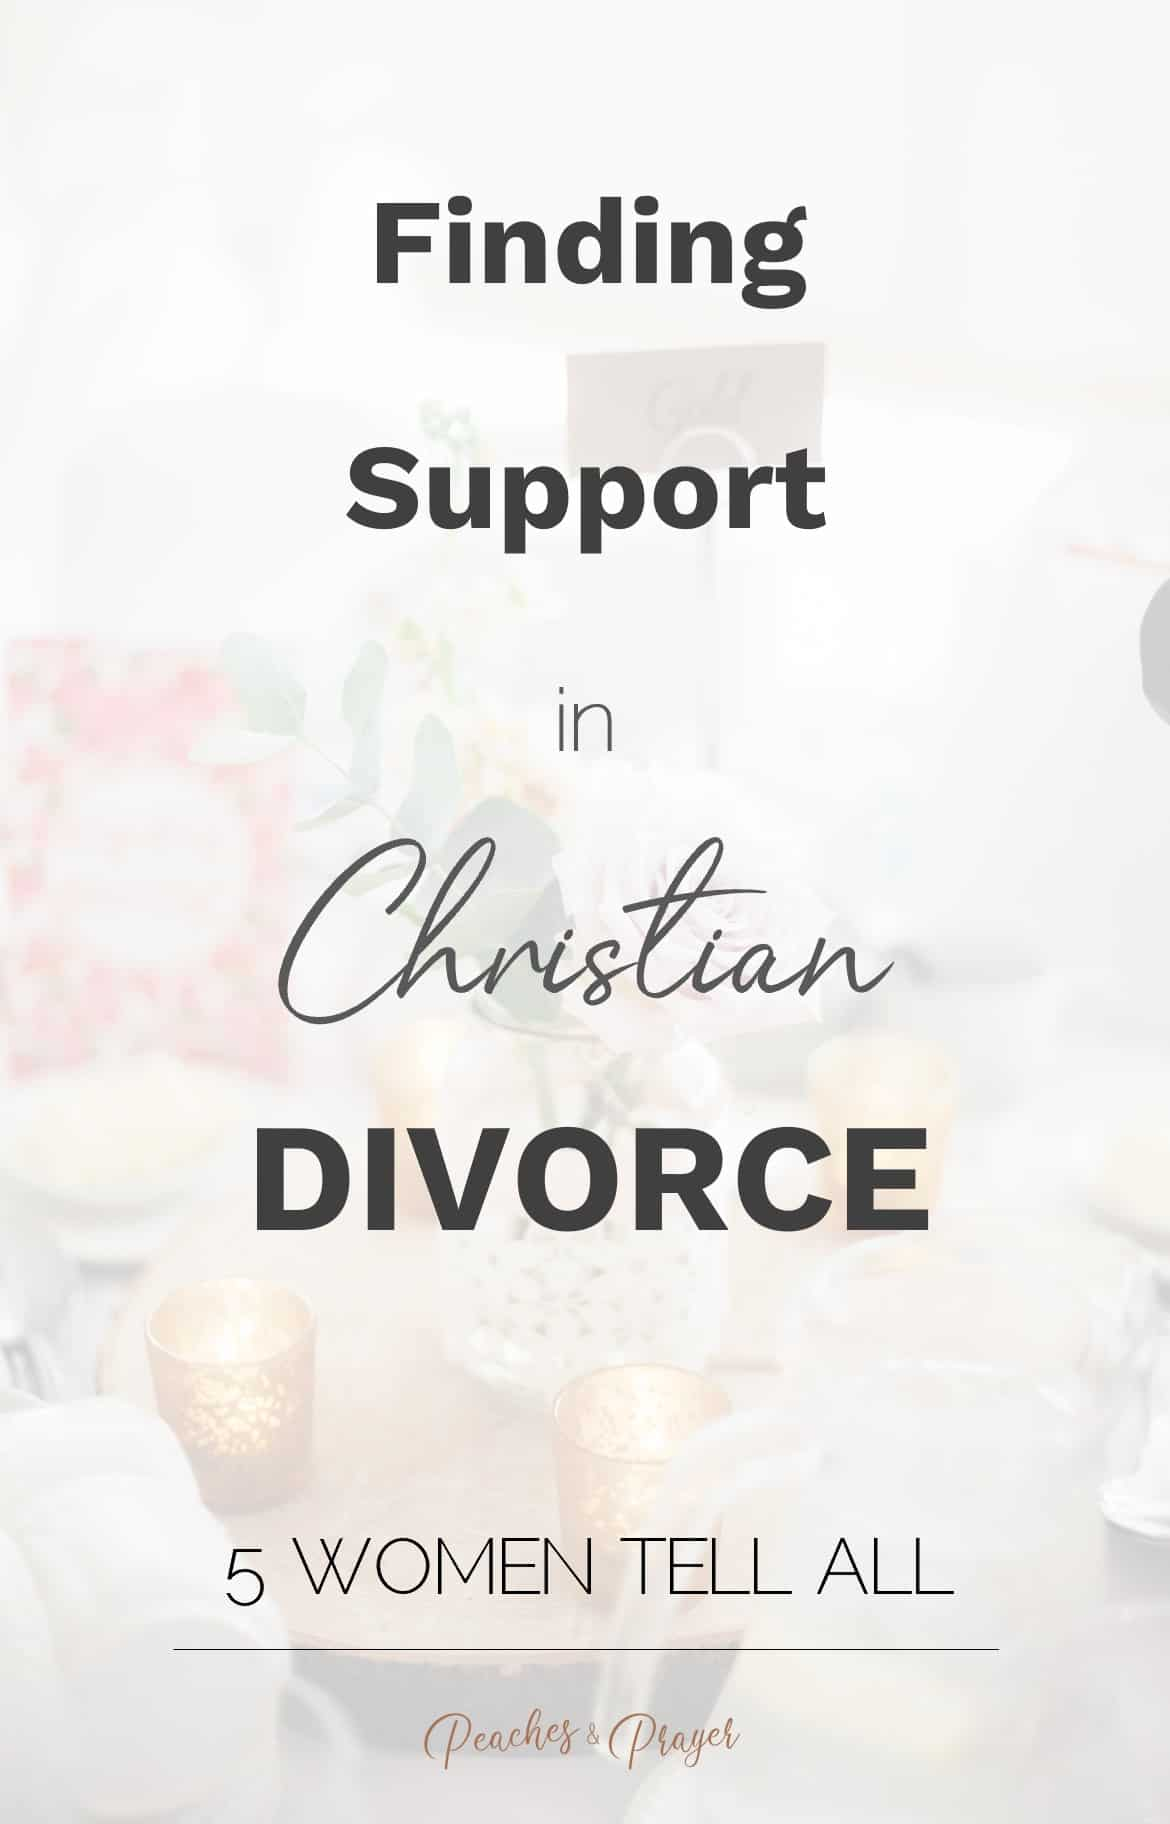 Finding Support in Christian Divorce